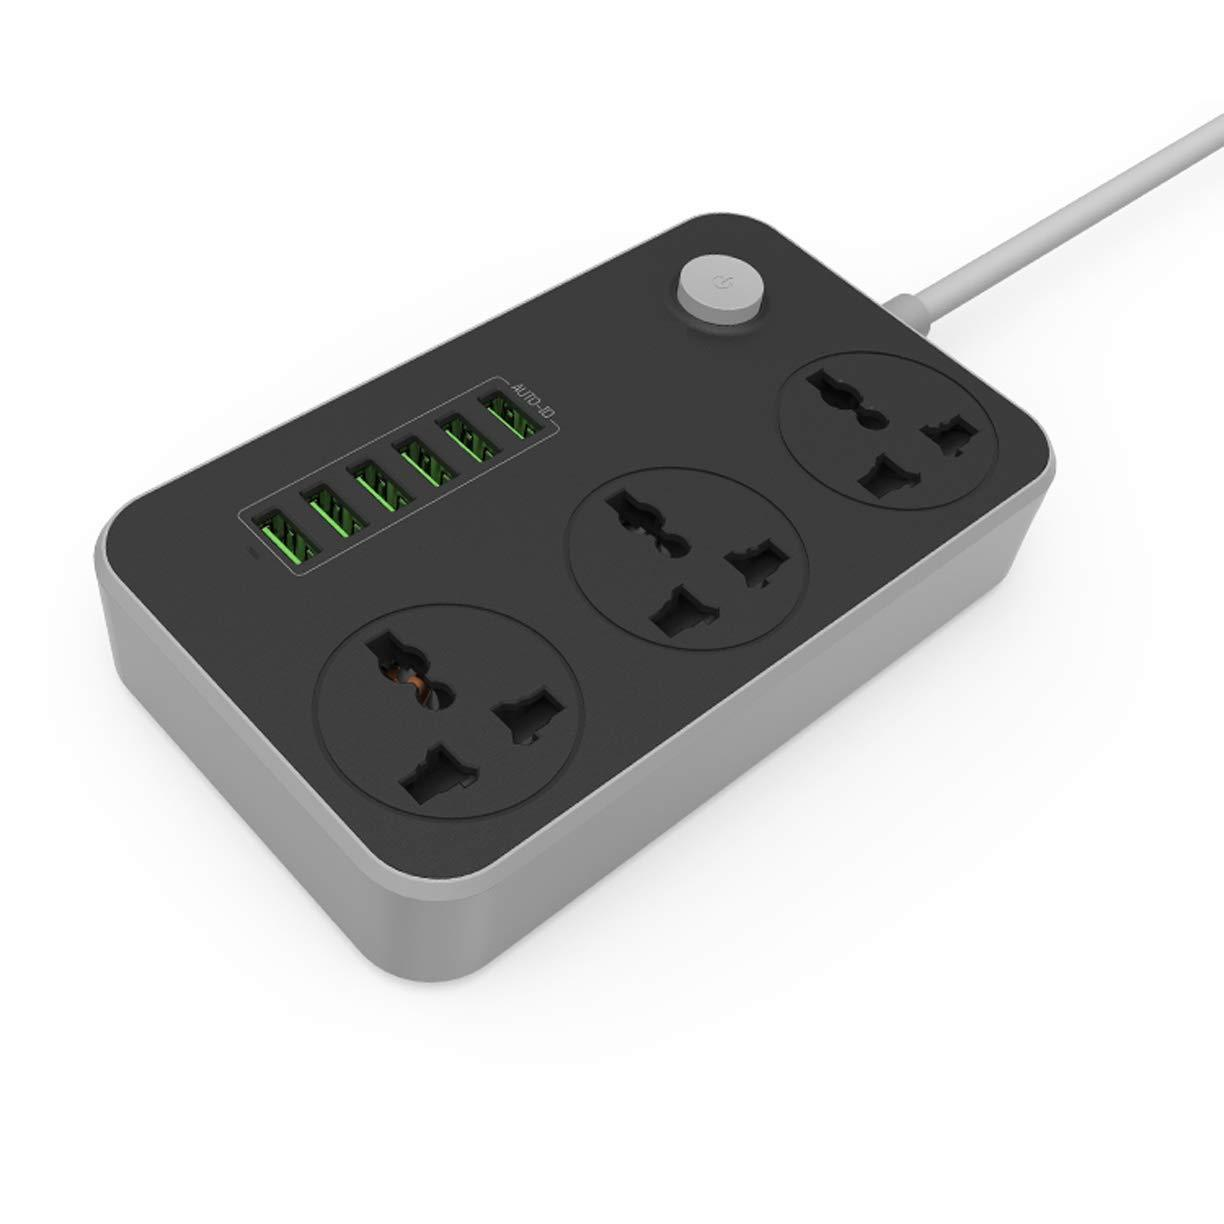 LDNIO 6-USB Charging 3-outlet Surge Protection Strip - Add-on™ Store